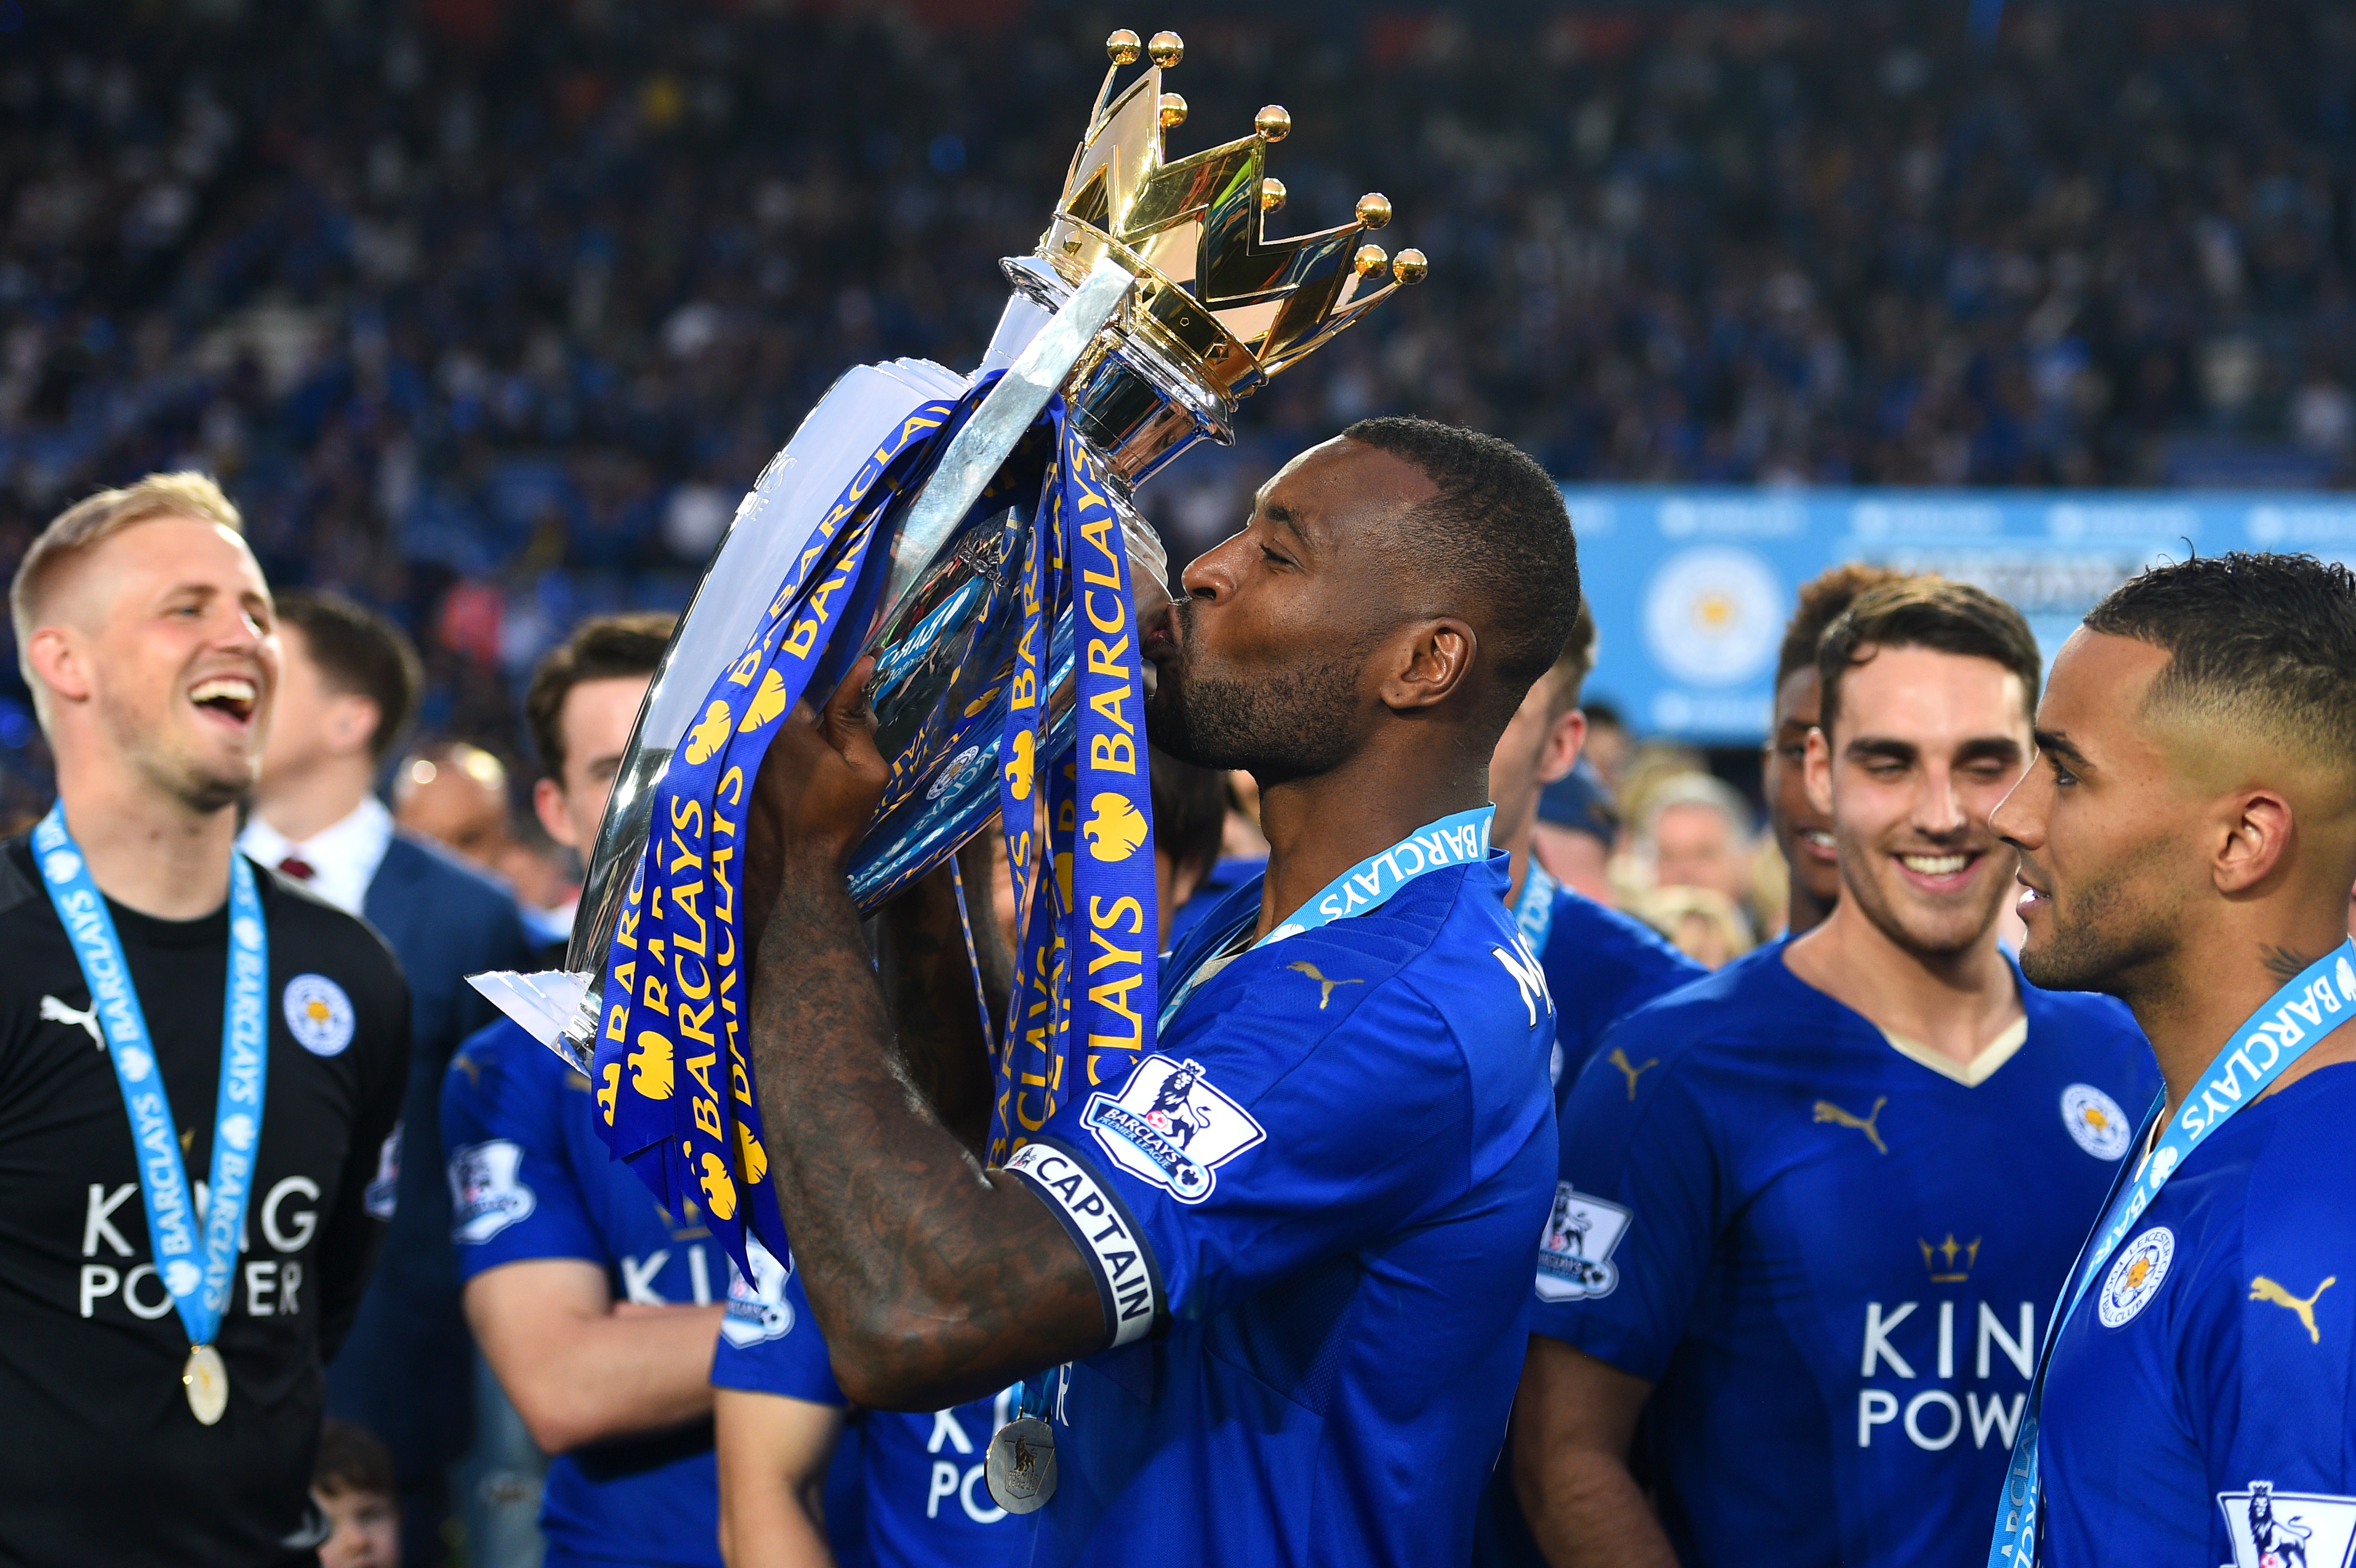 LEICESTER, ENGLAND - MAY 07: Wes Morgan of Leicester City kisses the Premier League Trophy as players and staffs celebrate the season champions after the Barclays Premier League match between Leicester City and Everton at The King Power Stadium on May 7, 2016 in Leicester, United Kingdom. (Photo by Shaun Botterill/Getty Images)